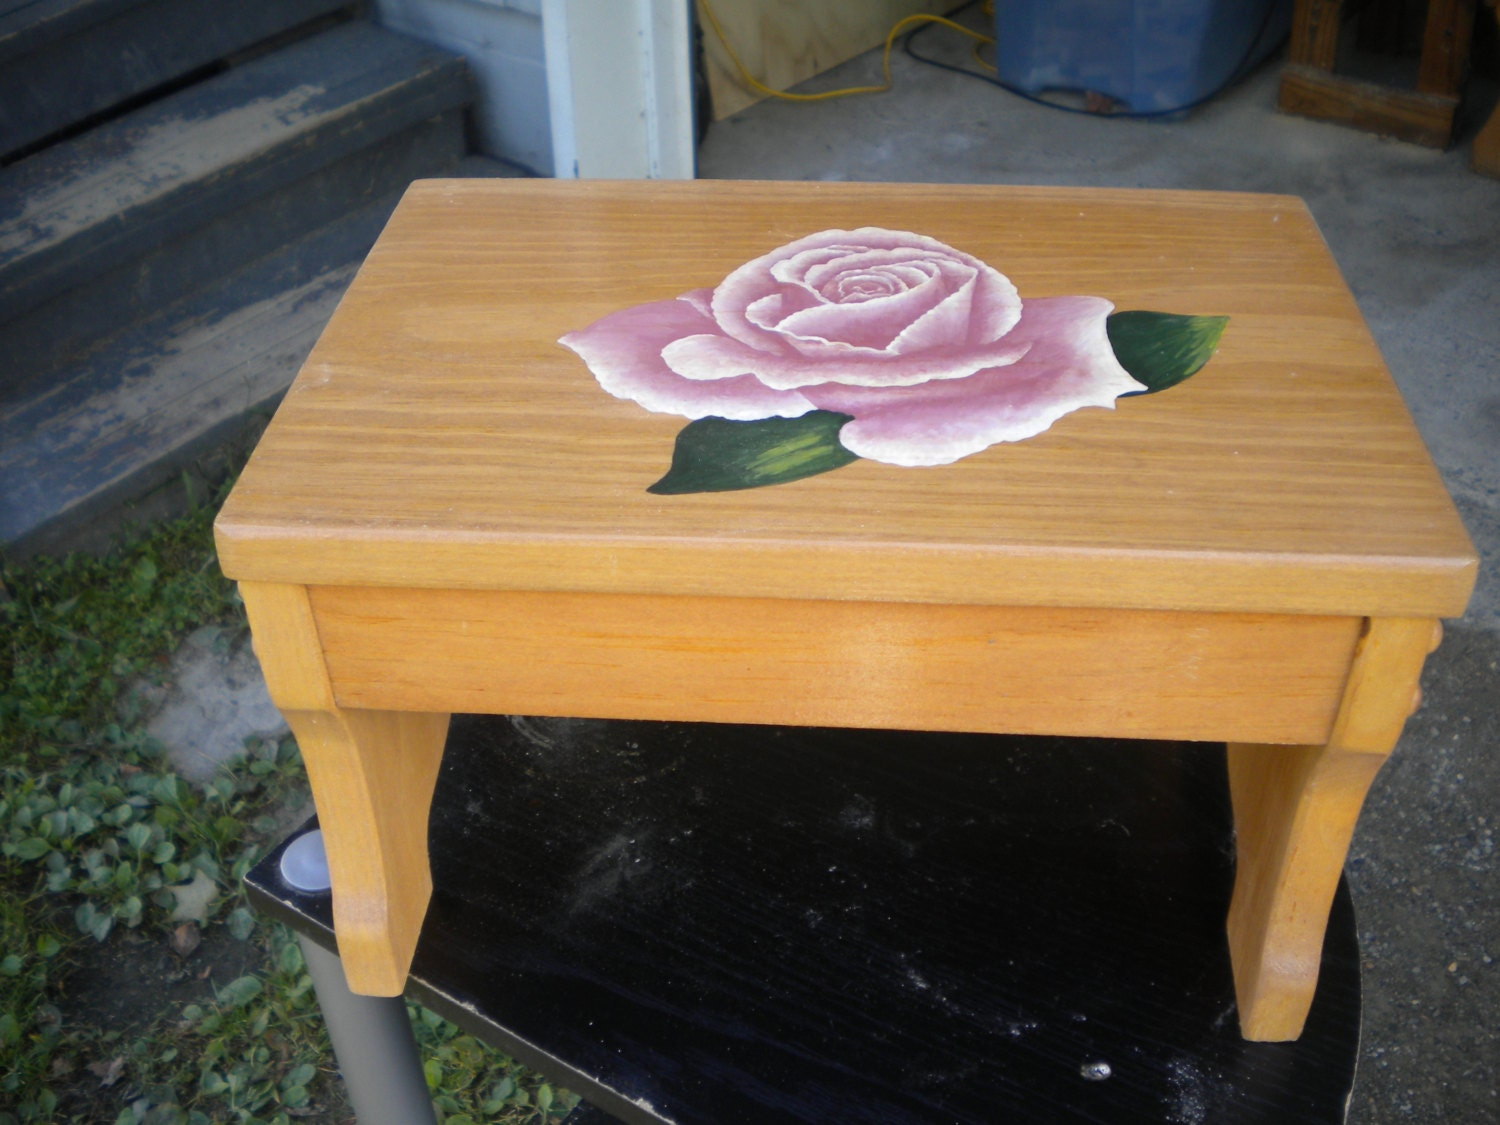 Step Stool Wooden Stool Acrylic Painting Pink Rose Hand